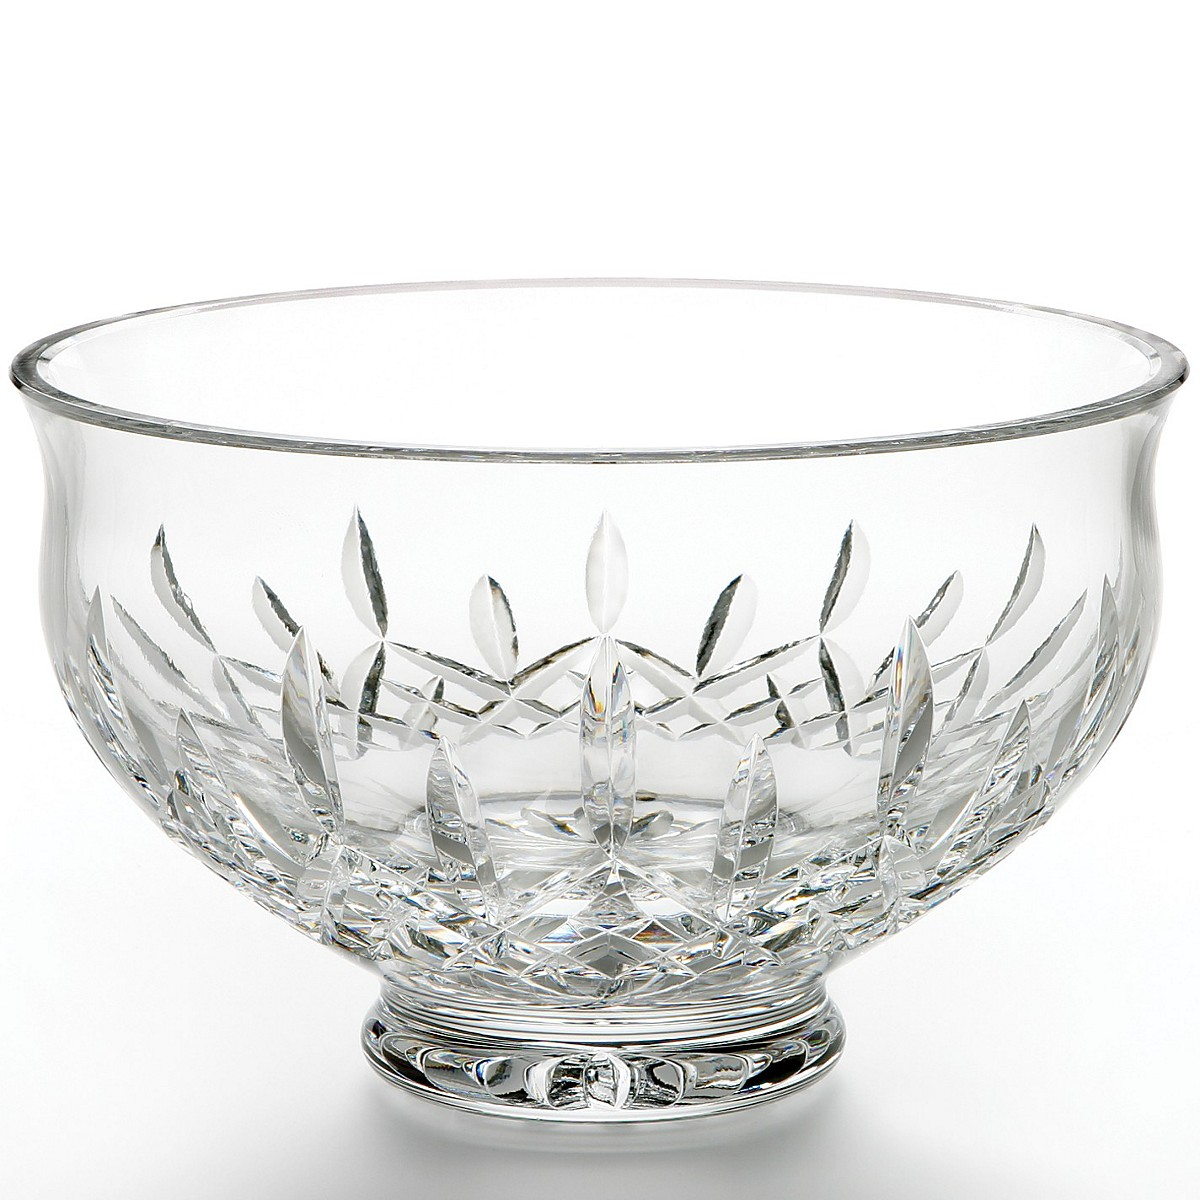 Enchanting waterford lismore with lismore goblet design glass waterford lismore